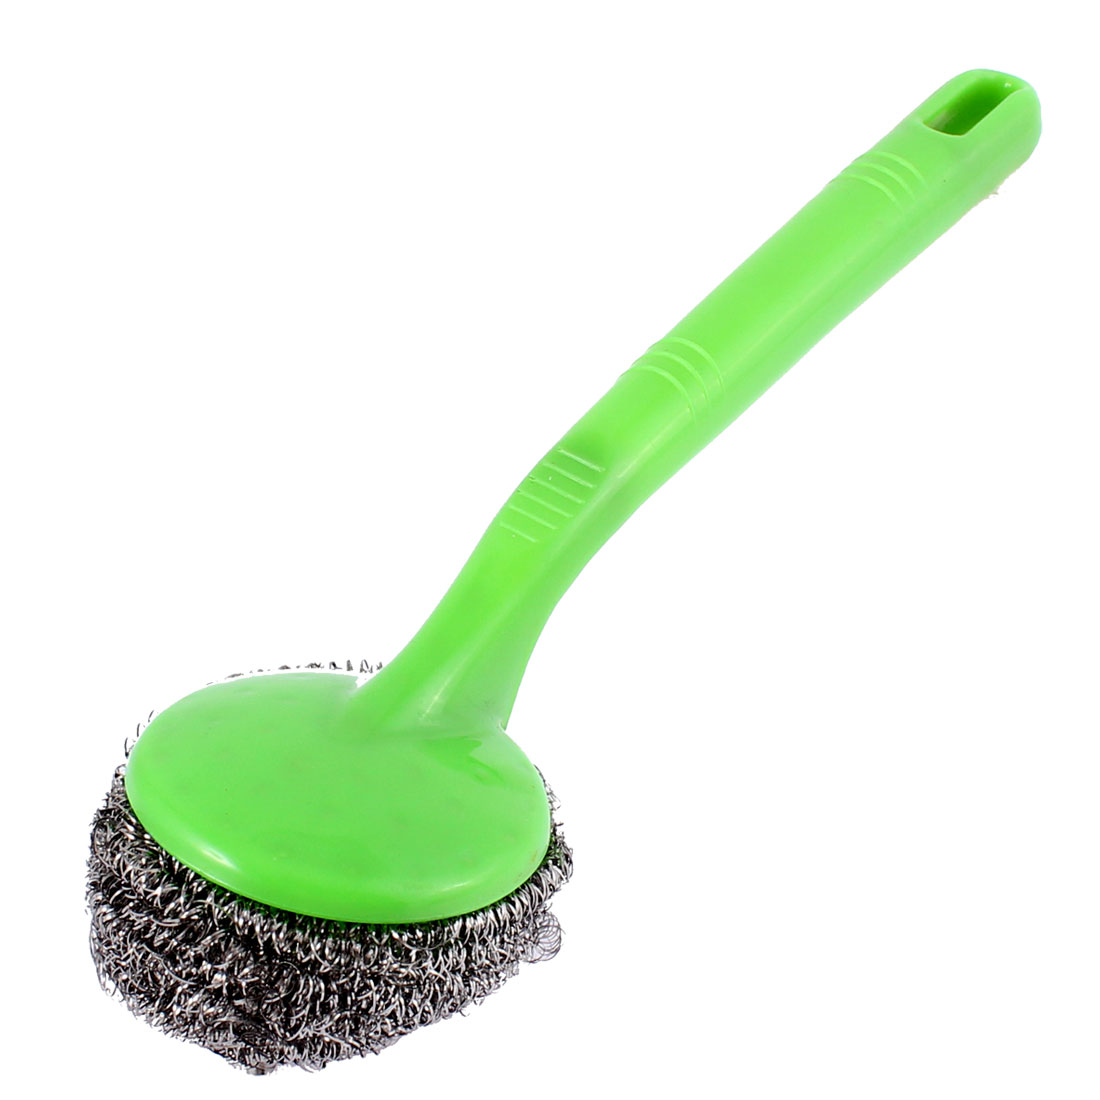 Household Pot Cleaning Steel Wire Ball Scourer Brush 23cm Length Green